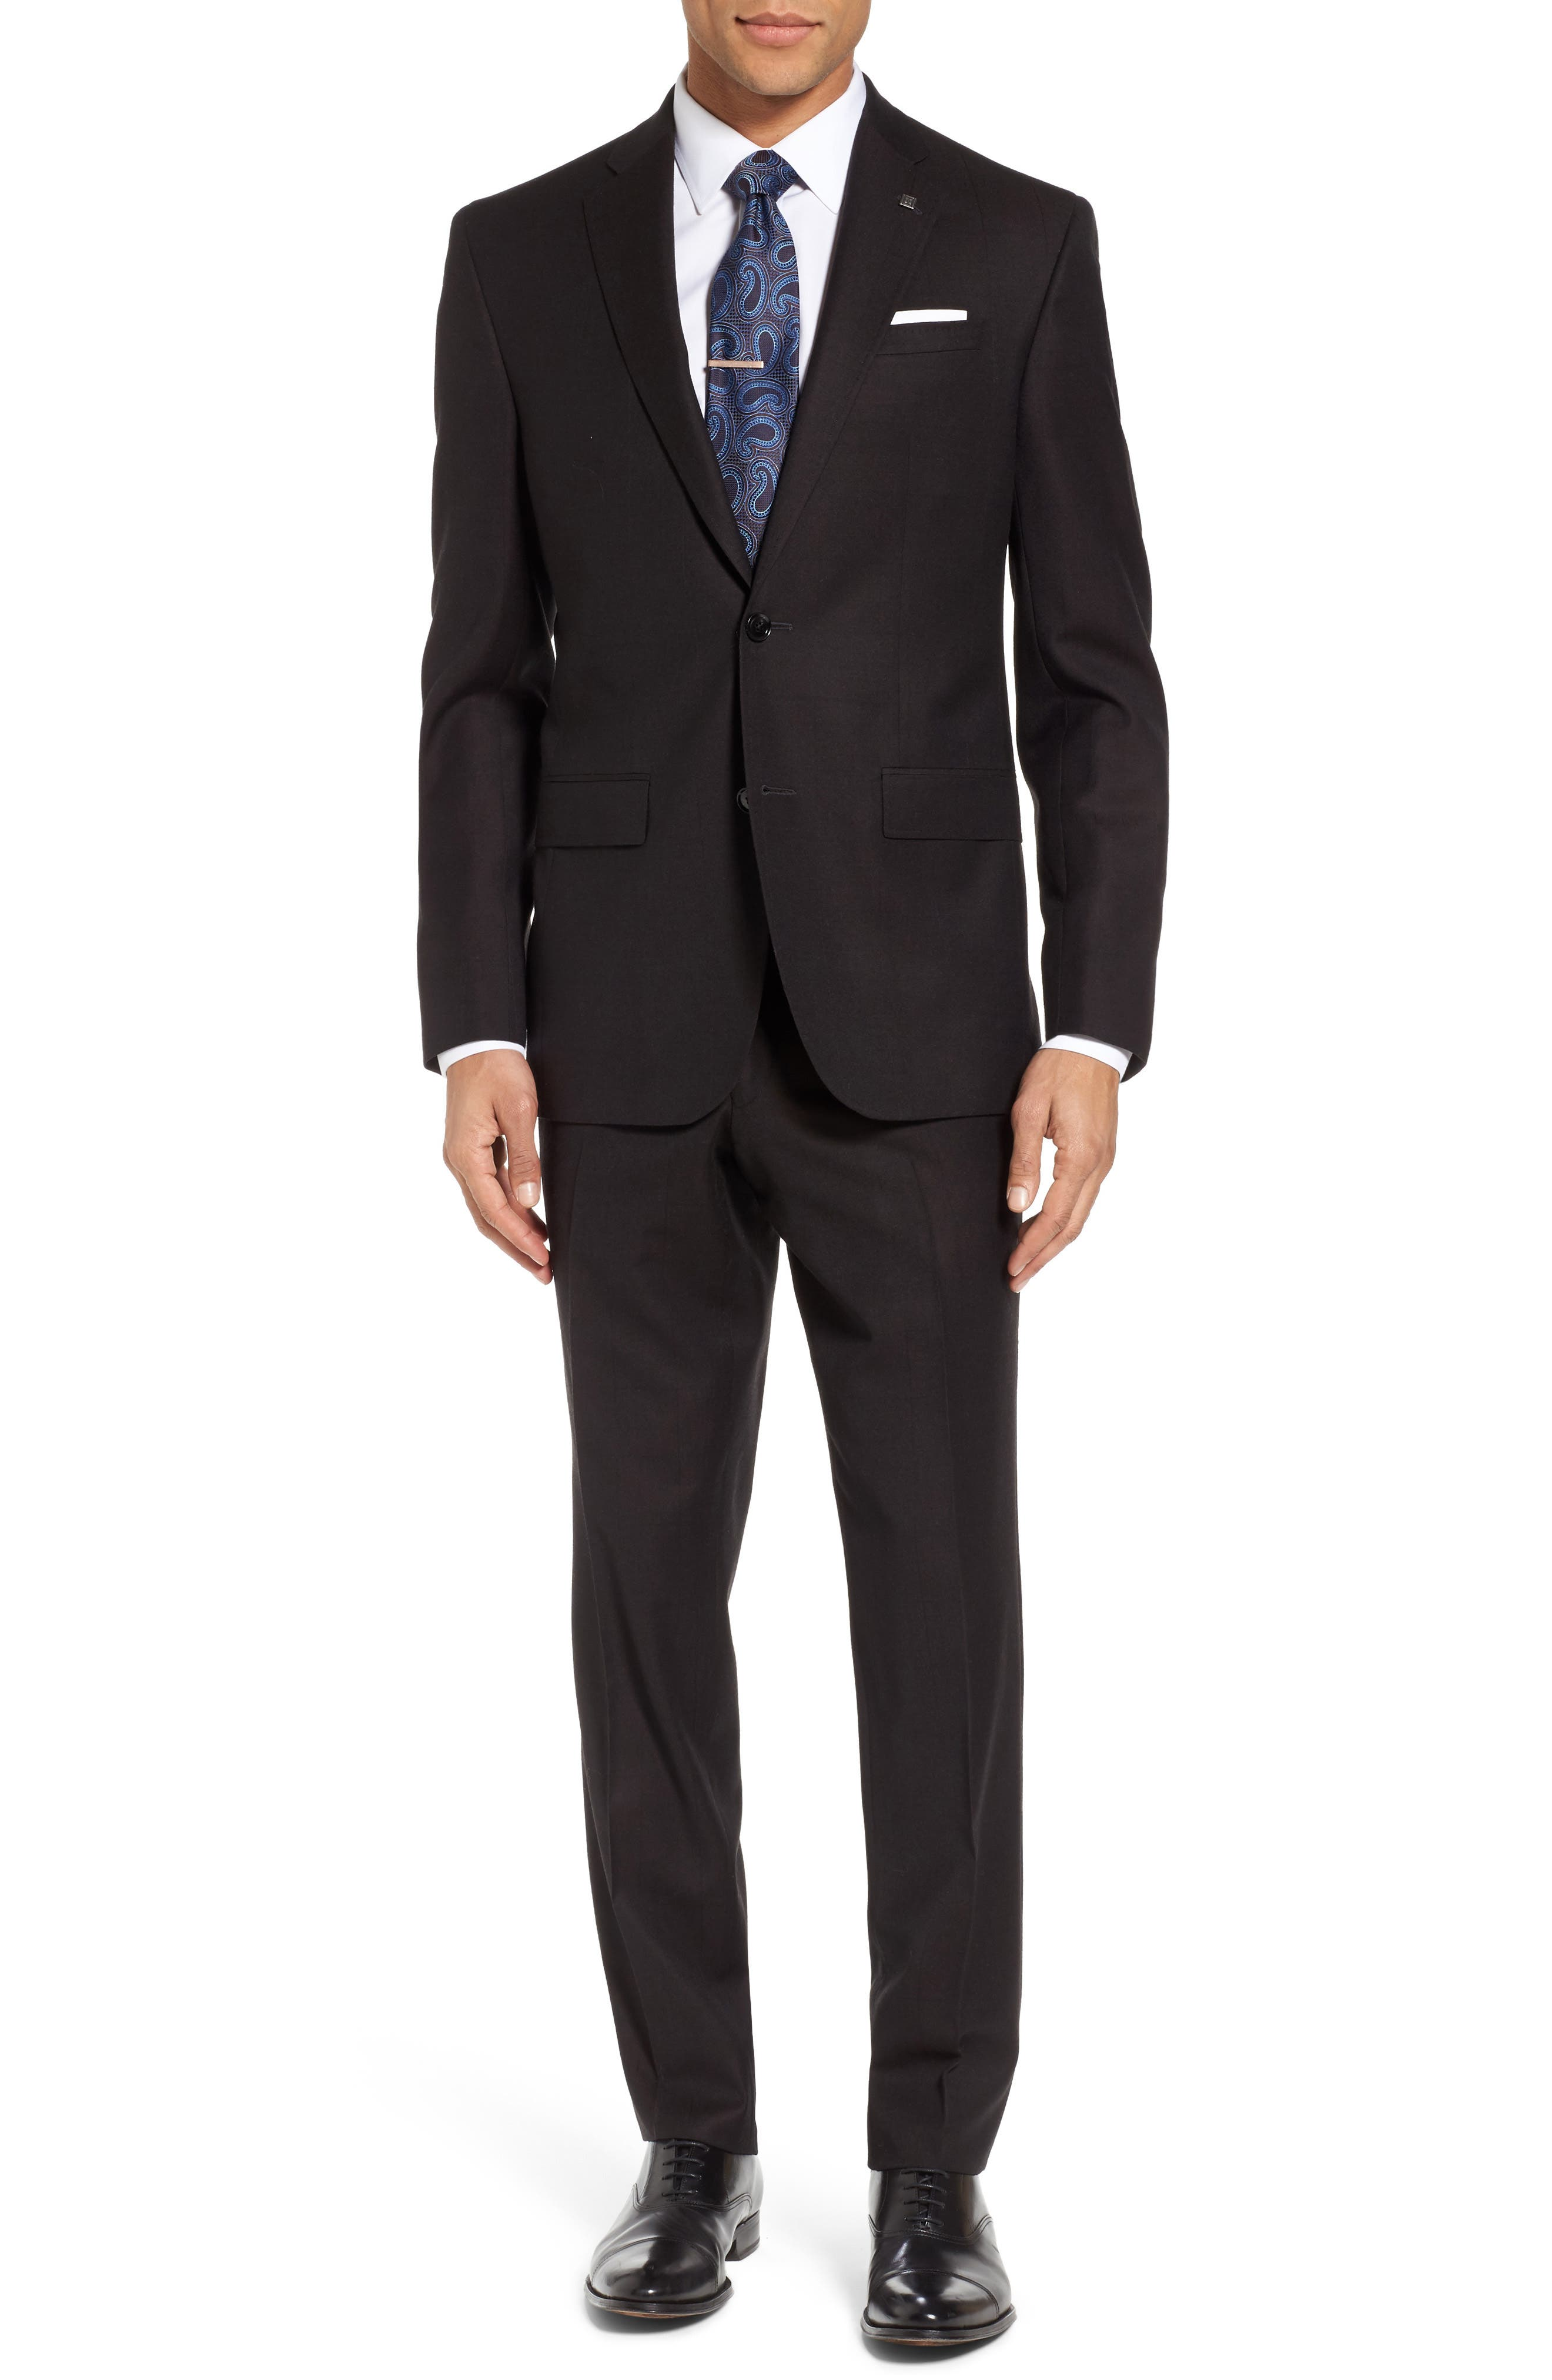 Jay Trim Fit Solid Wool Suit,                         Main,                         color, Brown